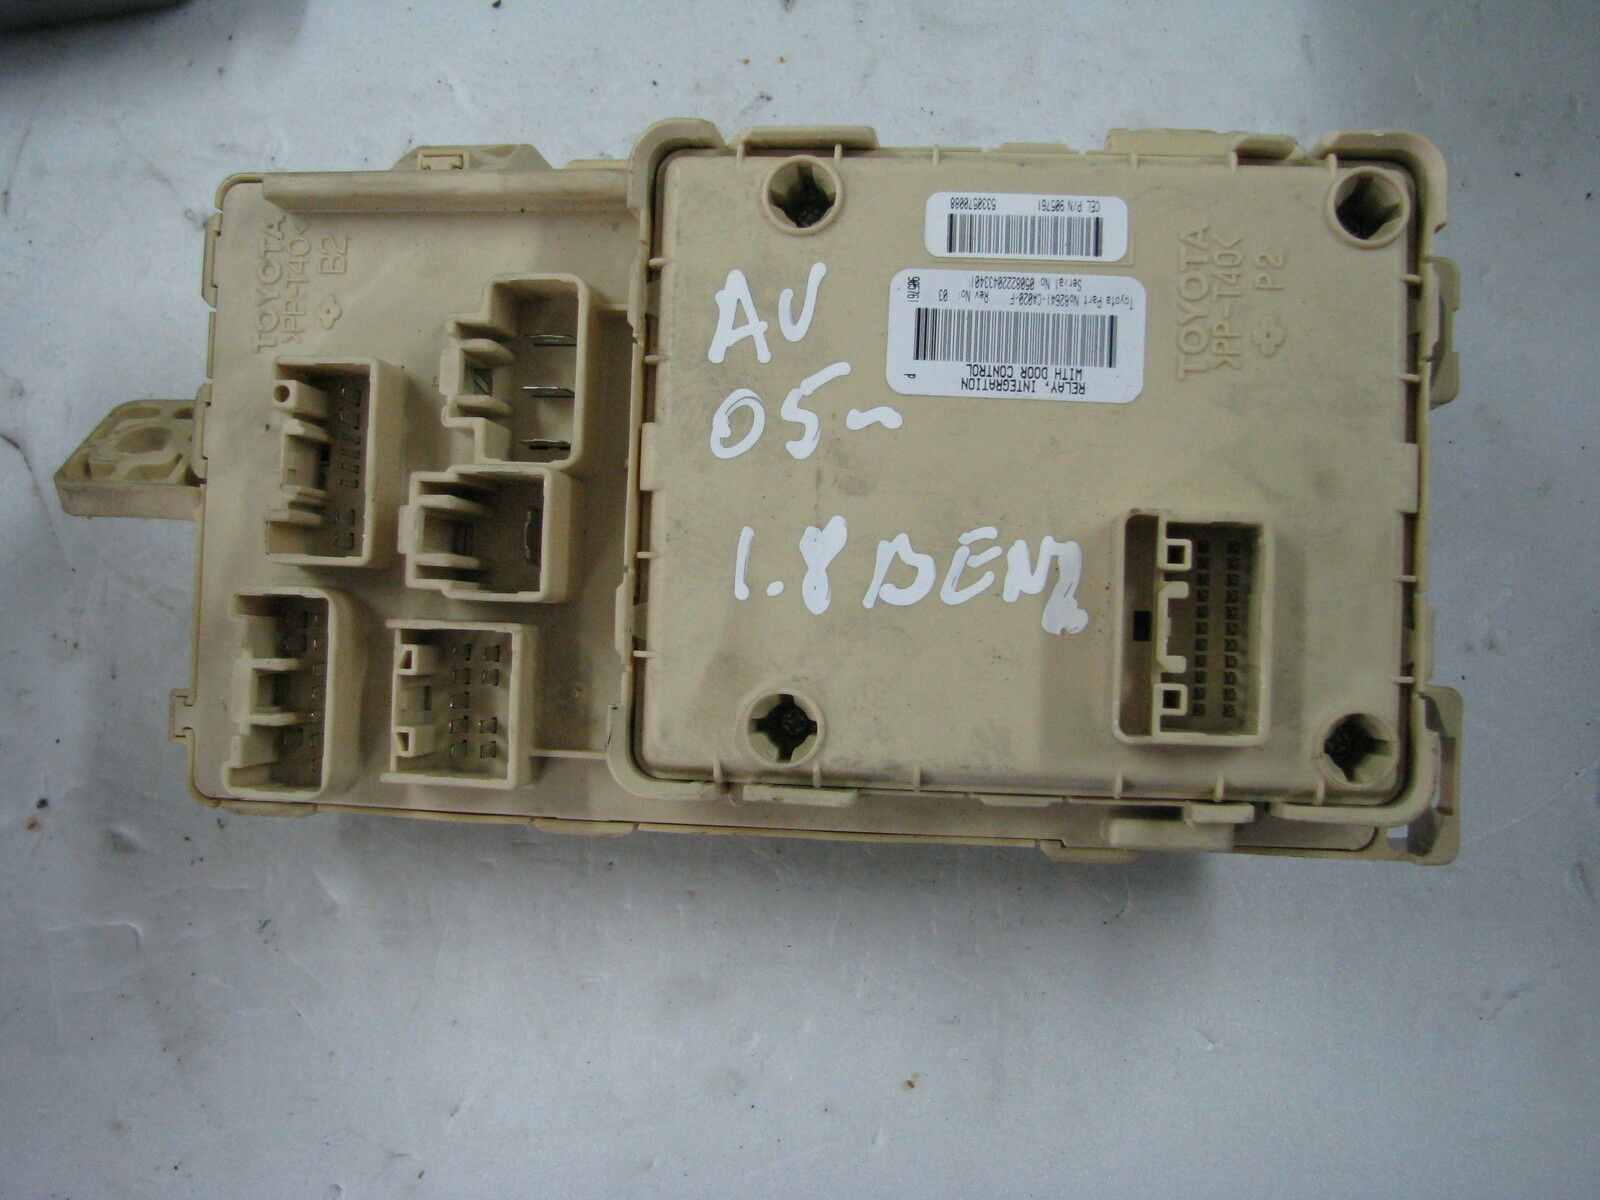 Toyota Avensis 18 Main Fuse Box Multiplex Network Body 82641 Ca020 Addacircuit Piggy Back Mini Blade Holder Blue 20amp 1 Of 4 See More